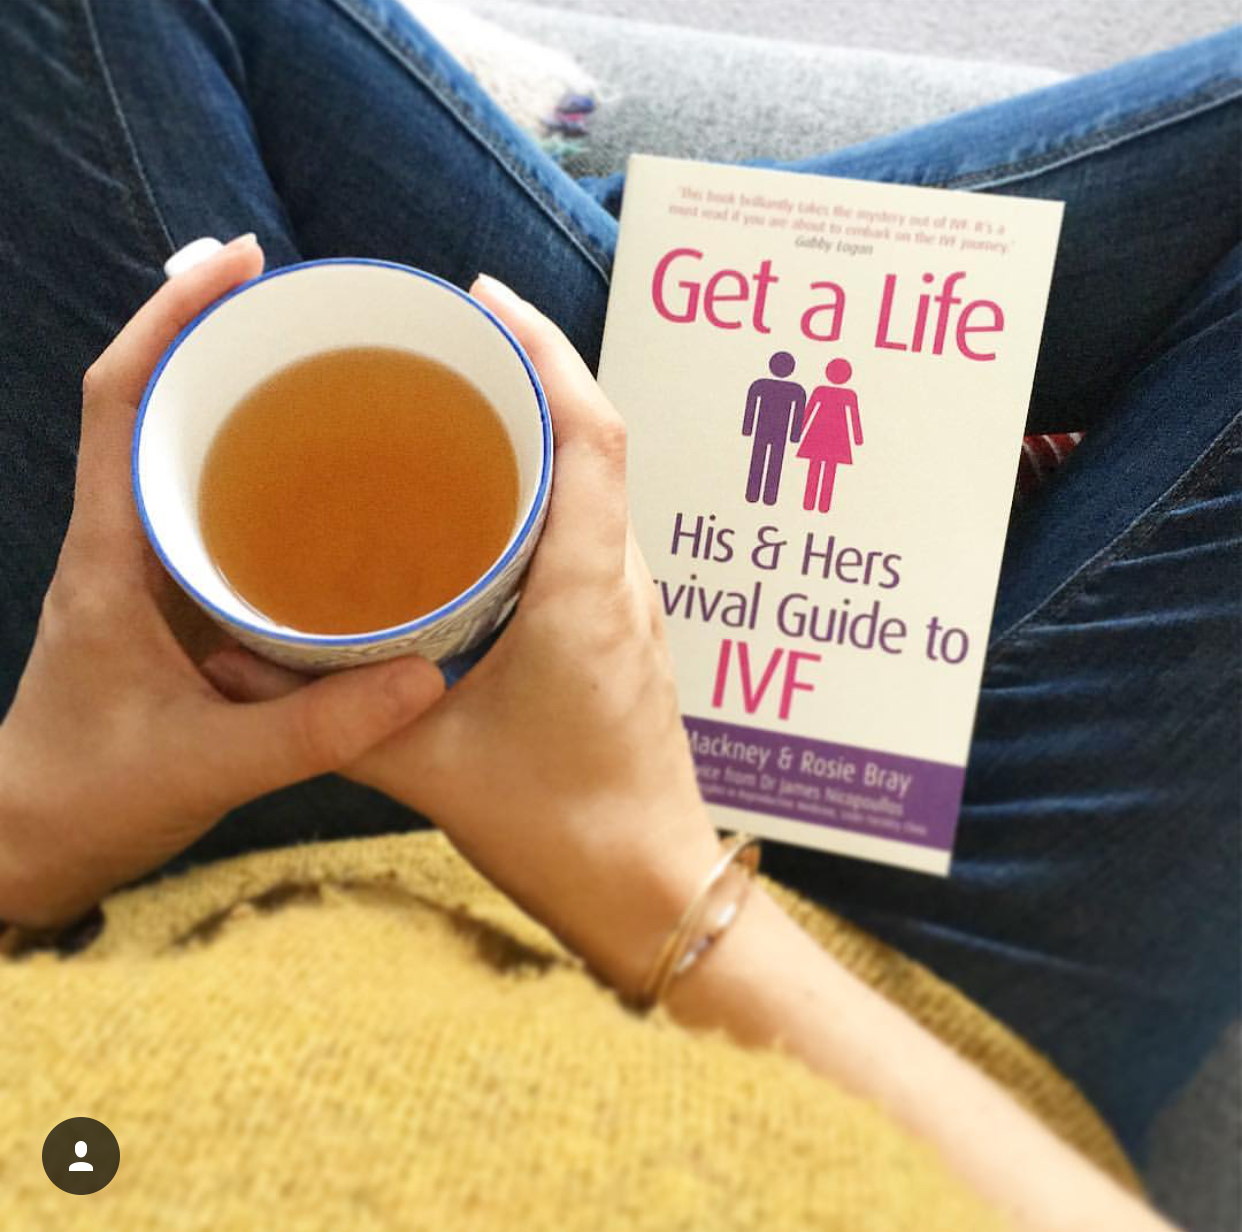 Book review of Get a Life - His and Hers Survival Guide to IVF by Richard Mackney and Rosie Bray